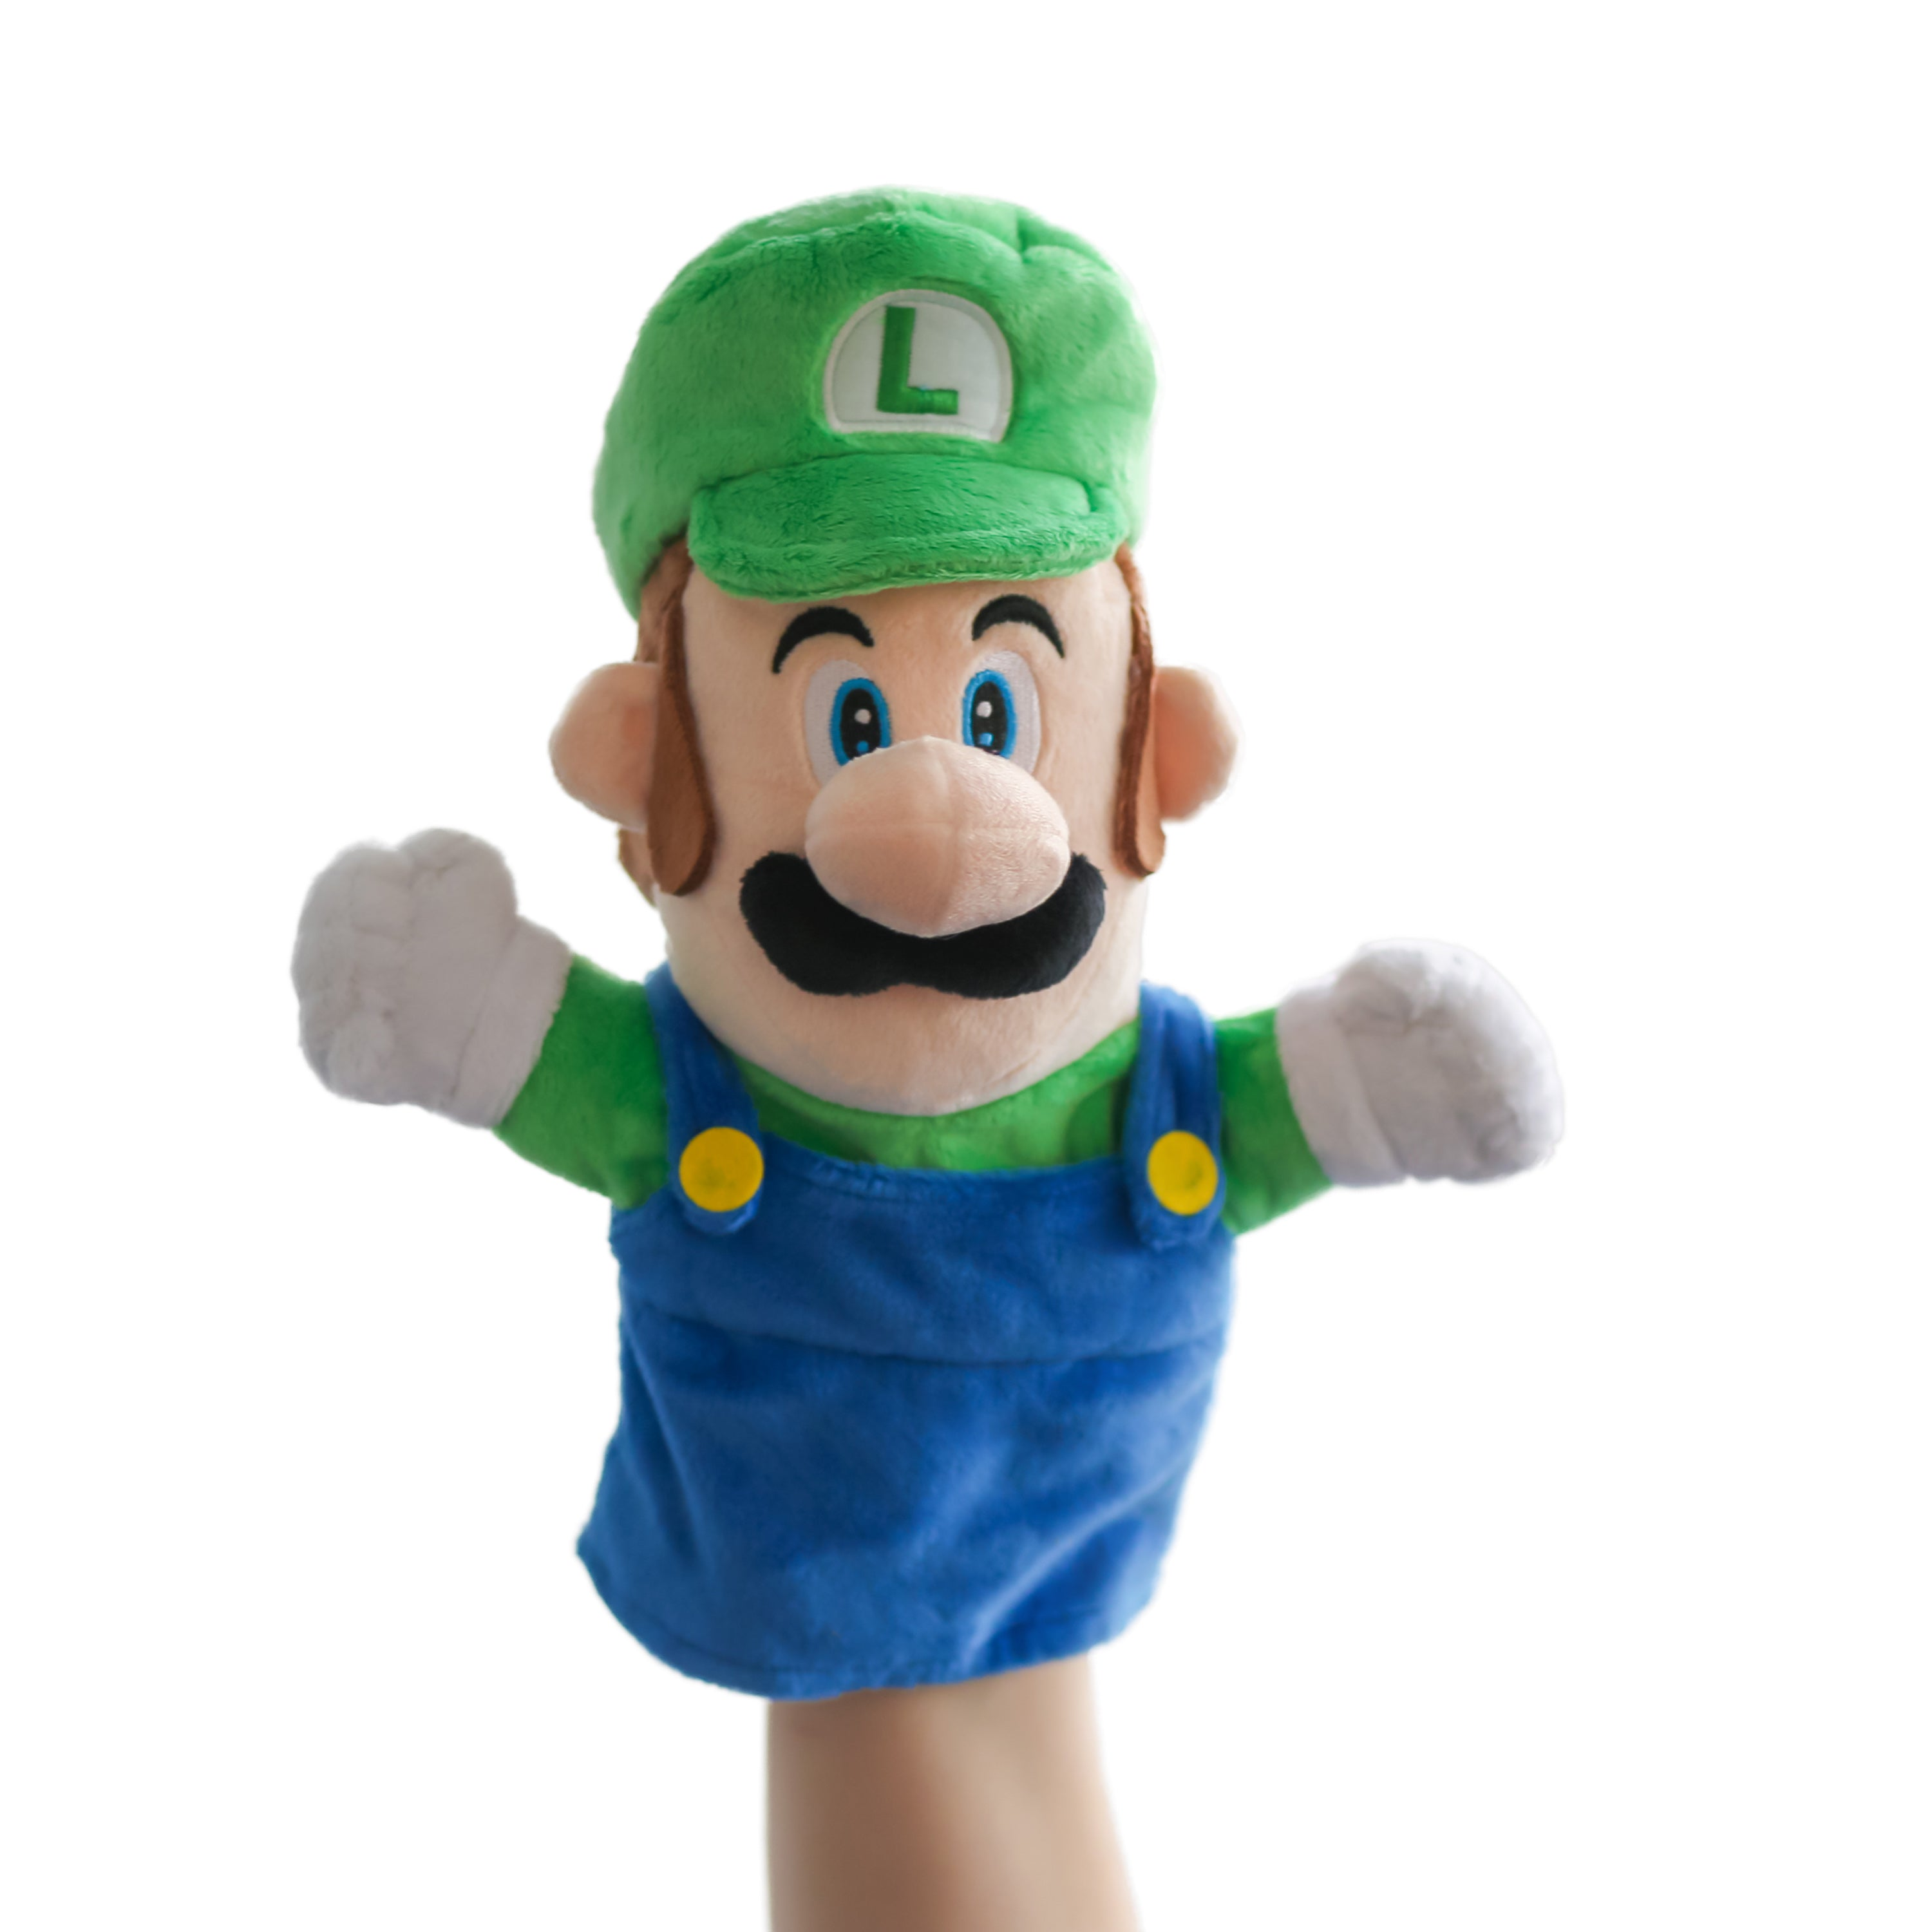 Luigi hand puppet by Uncute